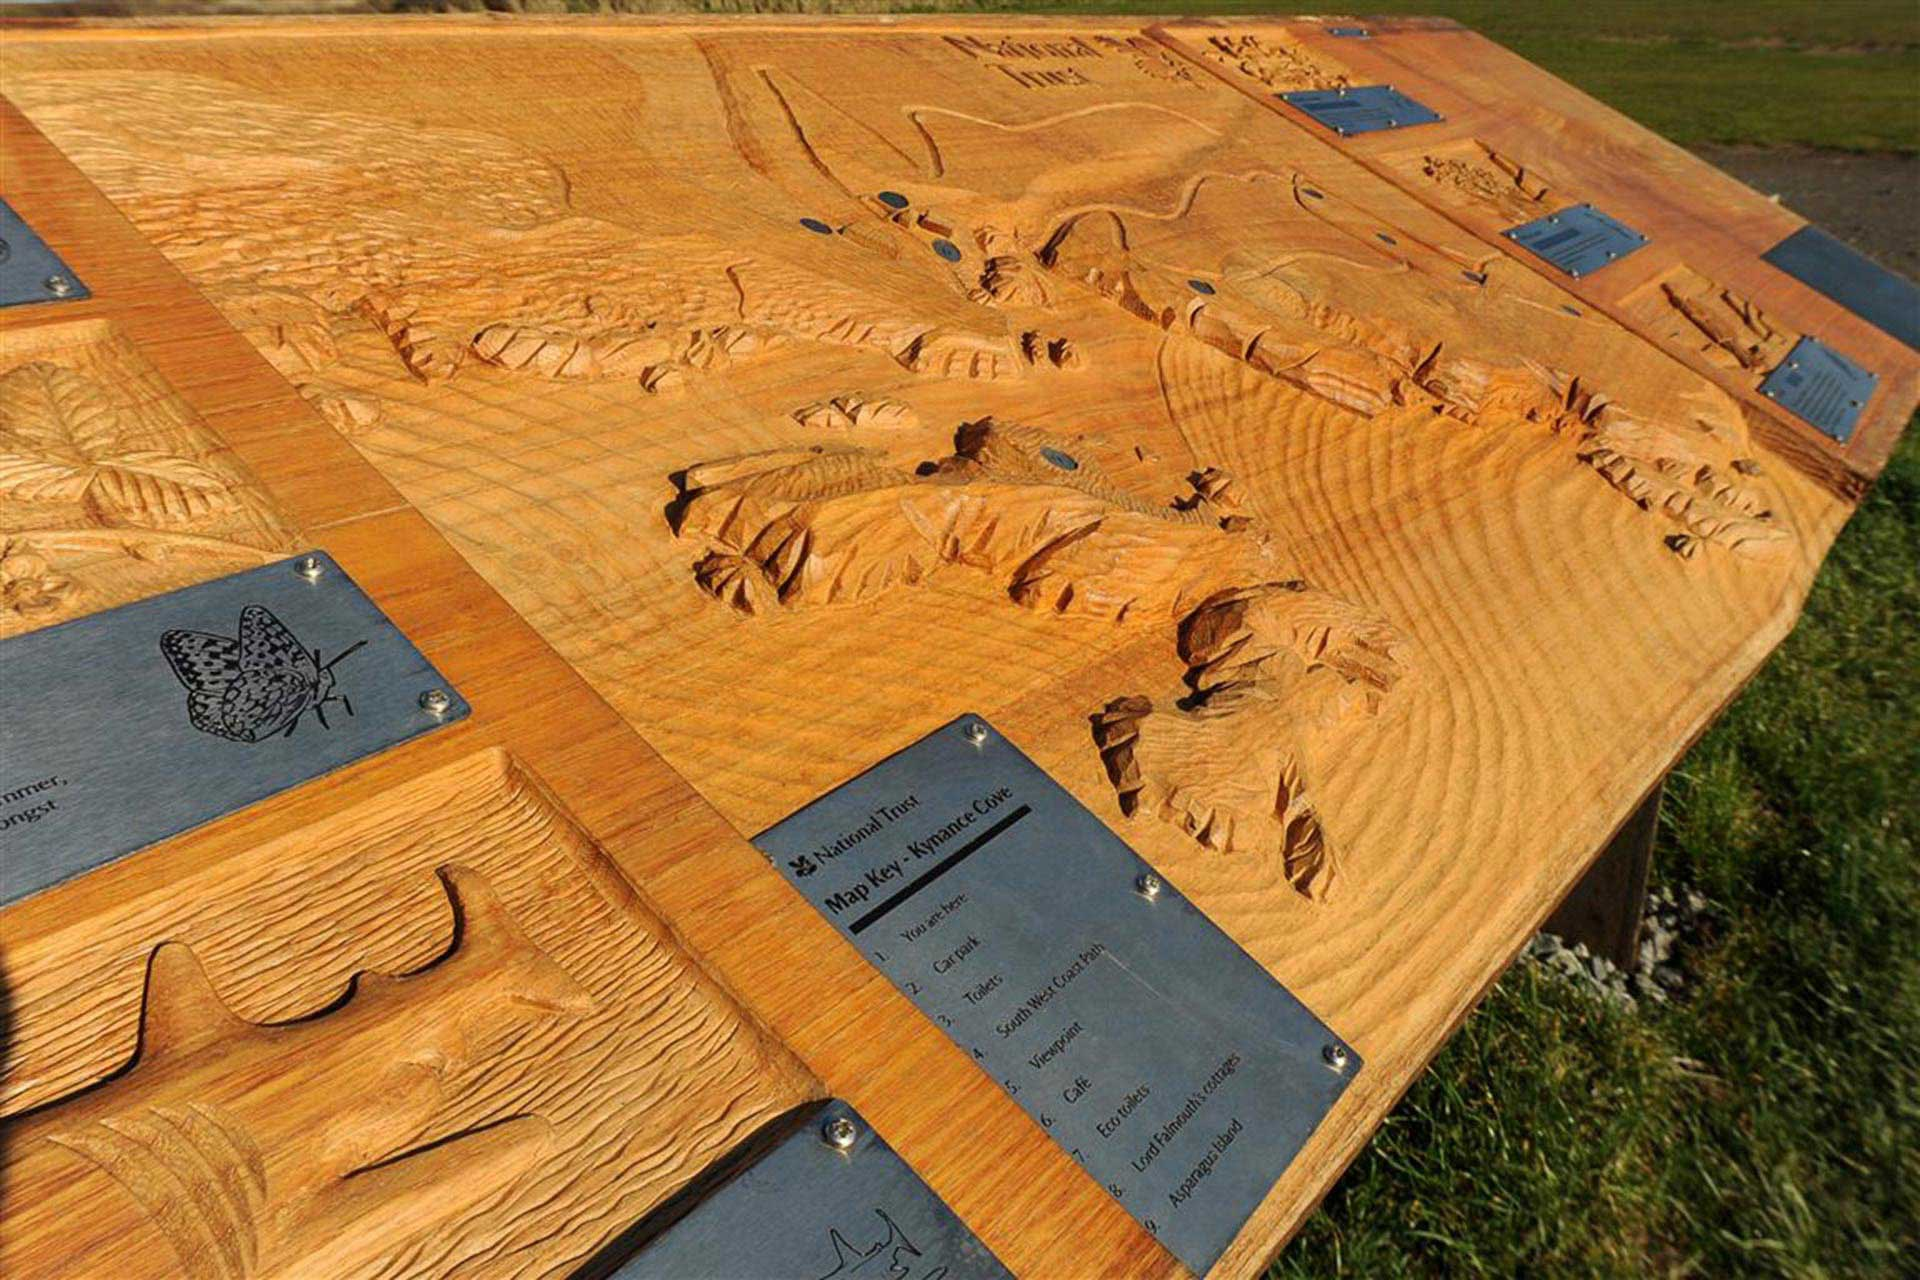 Hand carved wood signage for National Trust at Kynance Cove